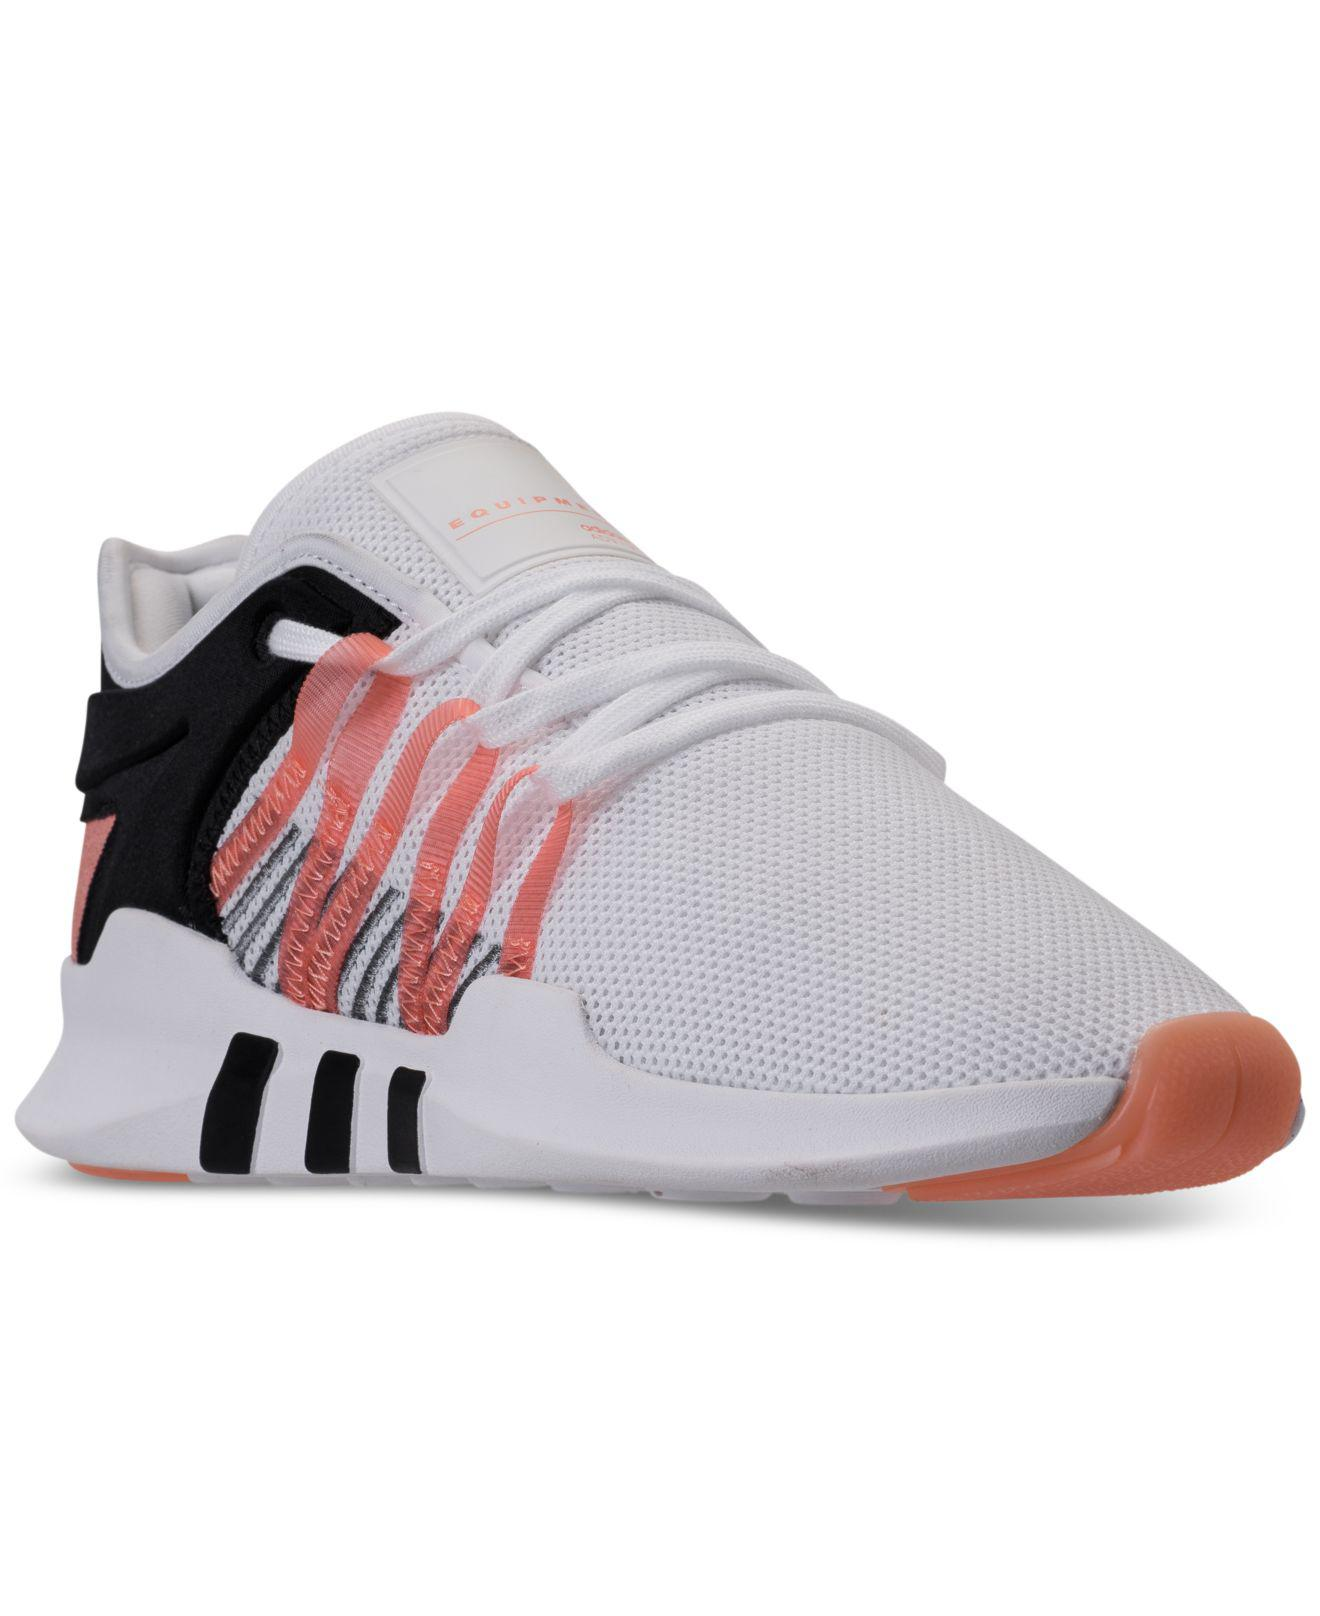 pretty nice 3ab0d 8eff1 Adidas Multicolor Eqt Racing Adv Casual Sneakers From Finish Line